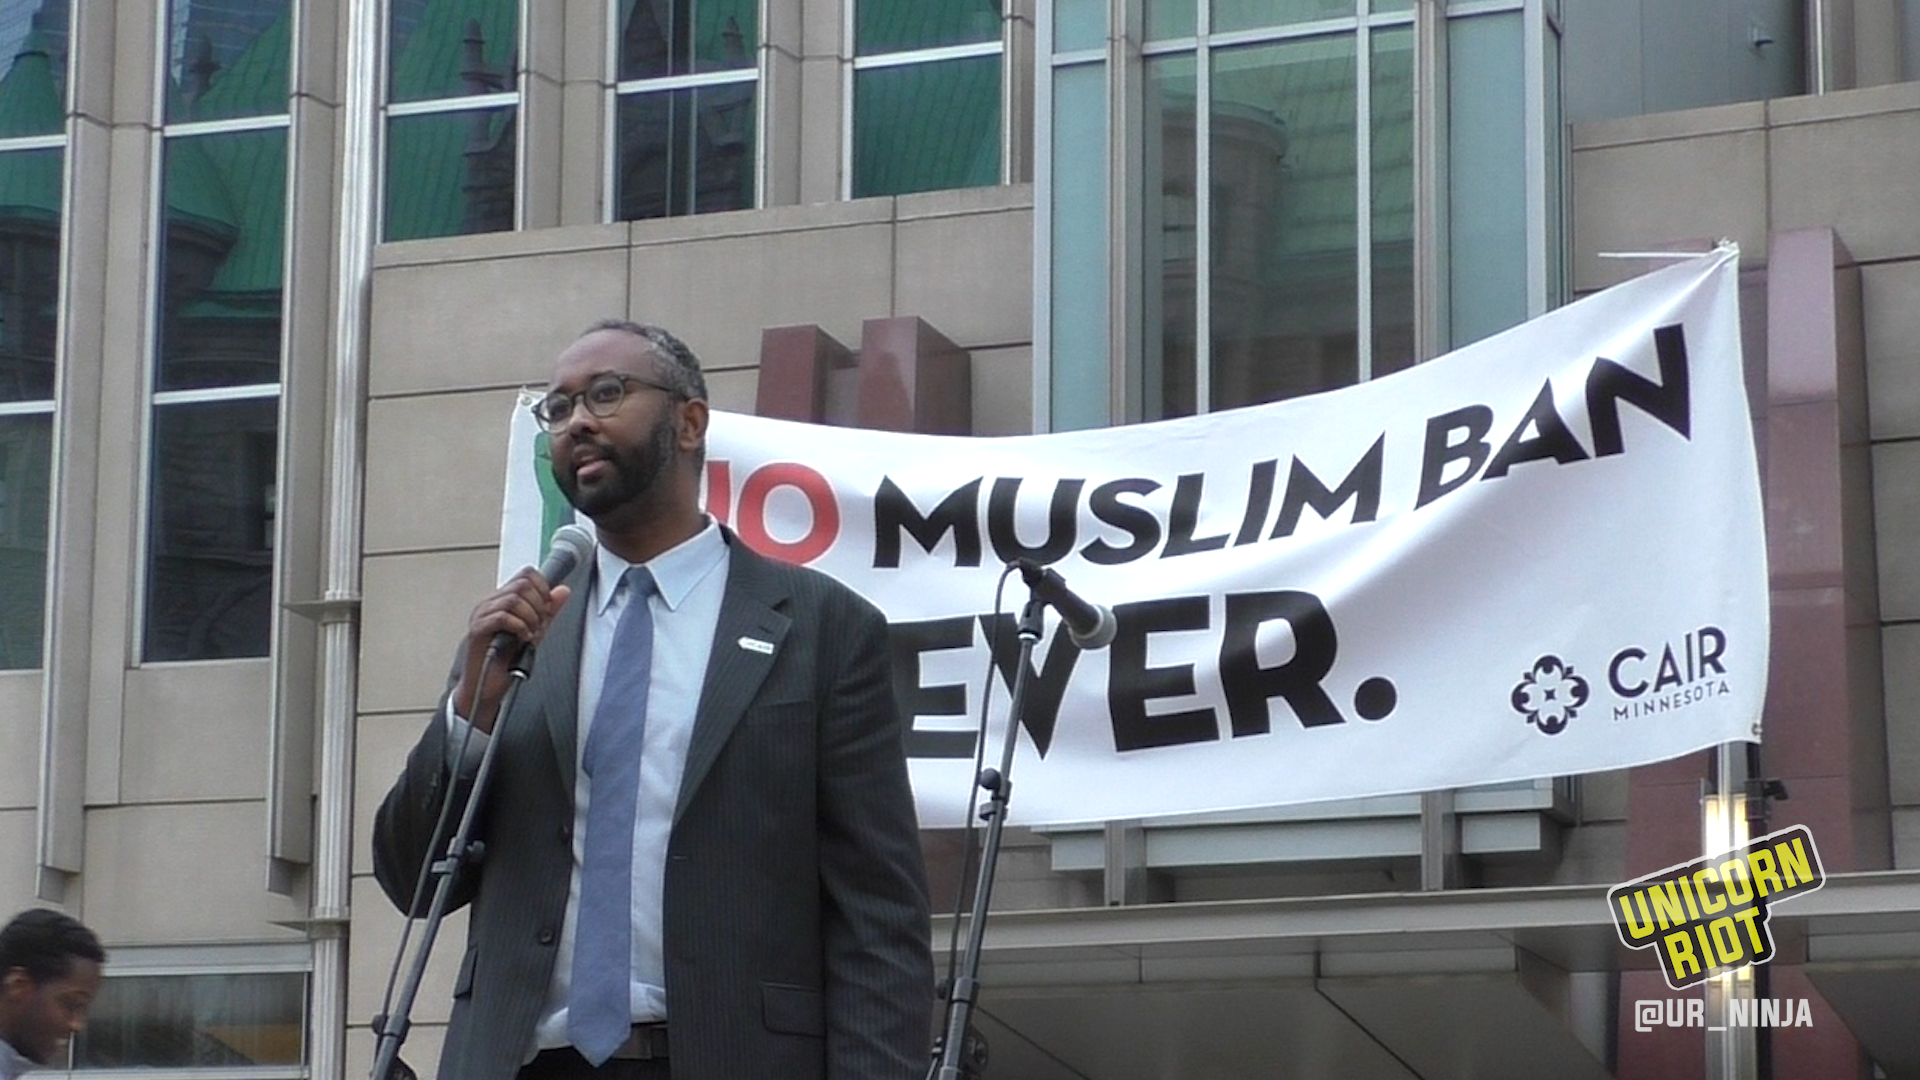 #NoMuslimBanEver Rally Speaker